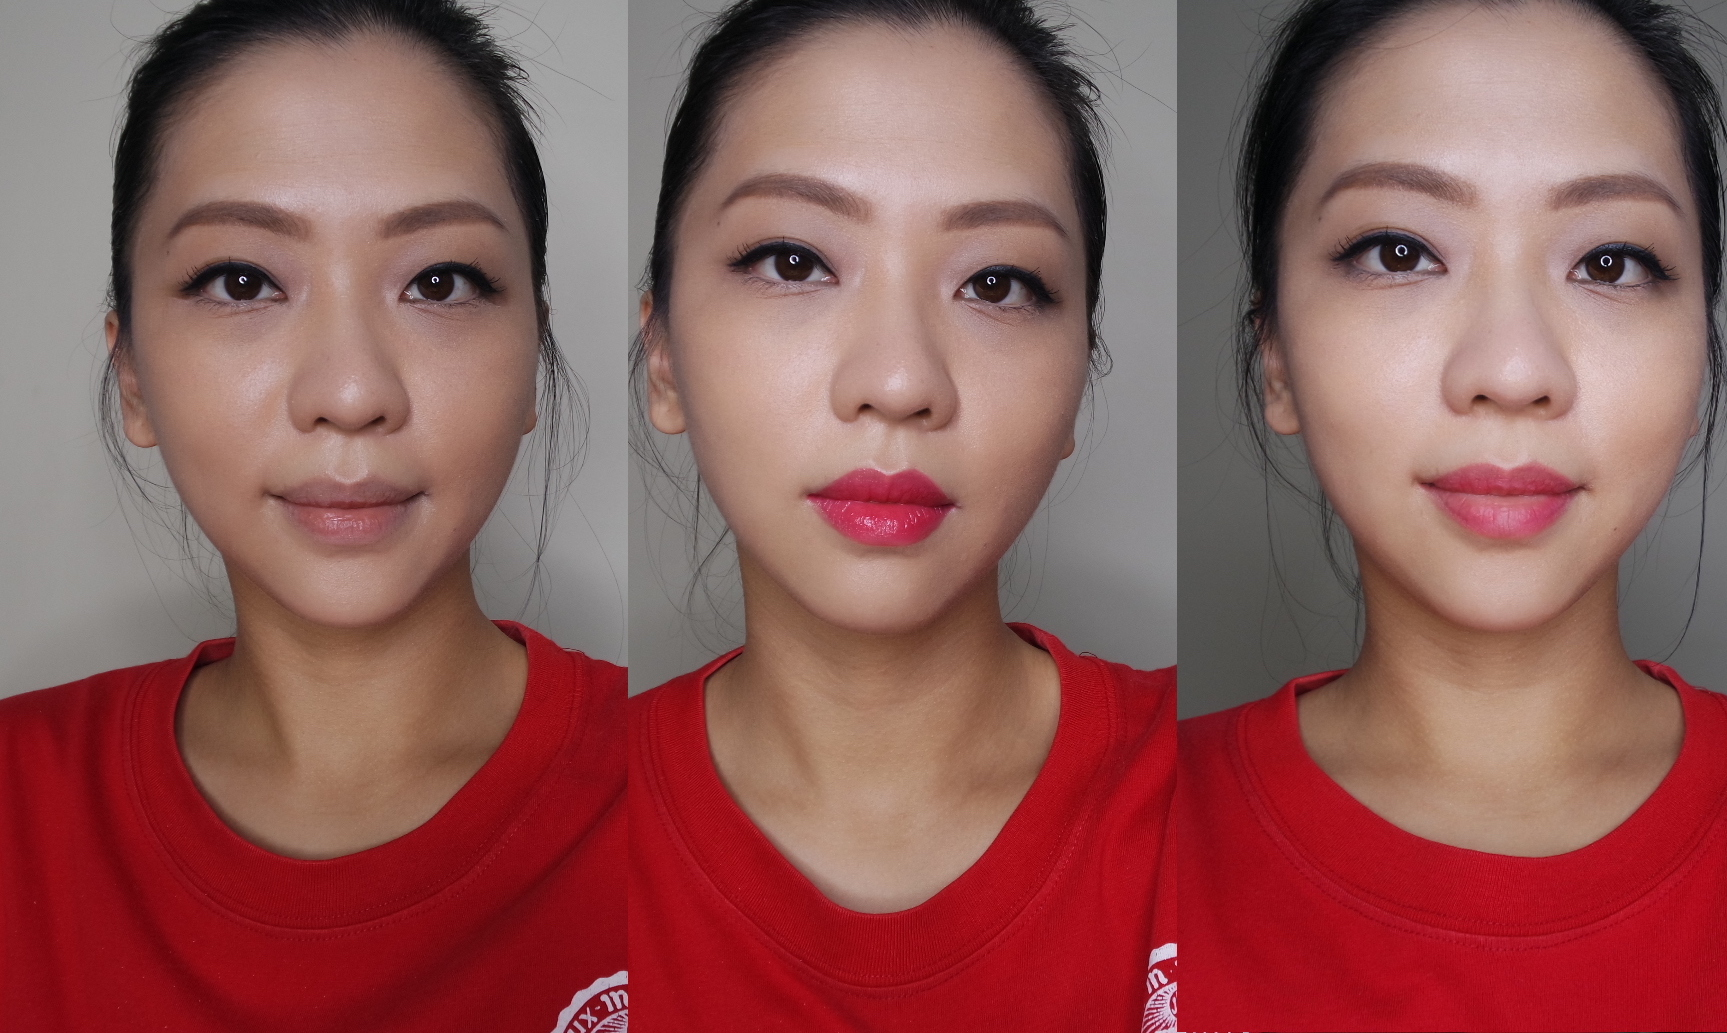 Kanebo Keep Wearing Rouge in 03 Vibrant Red Acid Test: L-R bare lip, heavy-handed application, post-pizza status